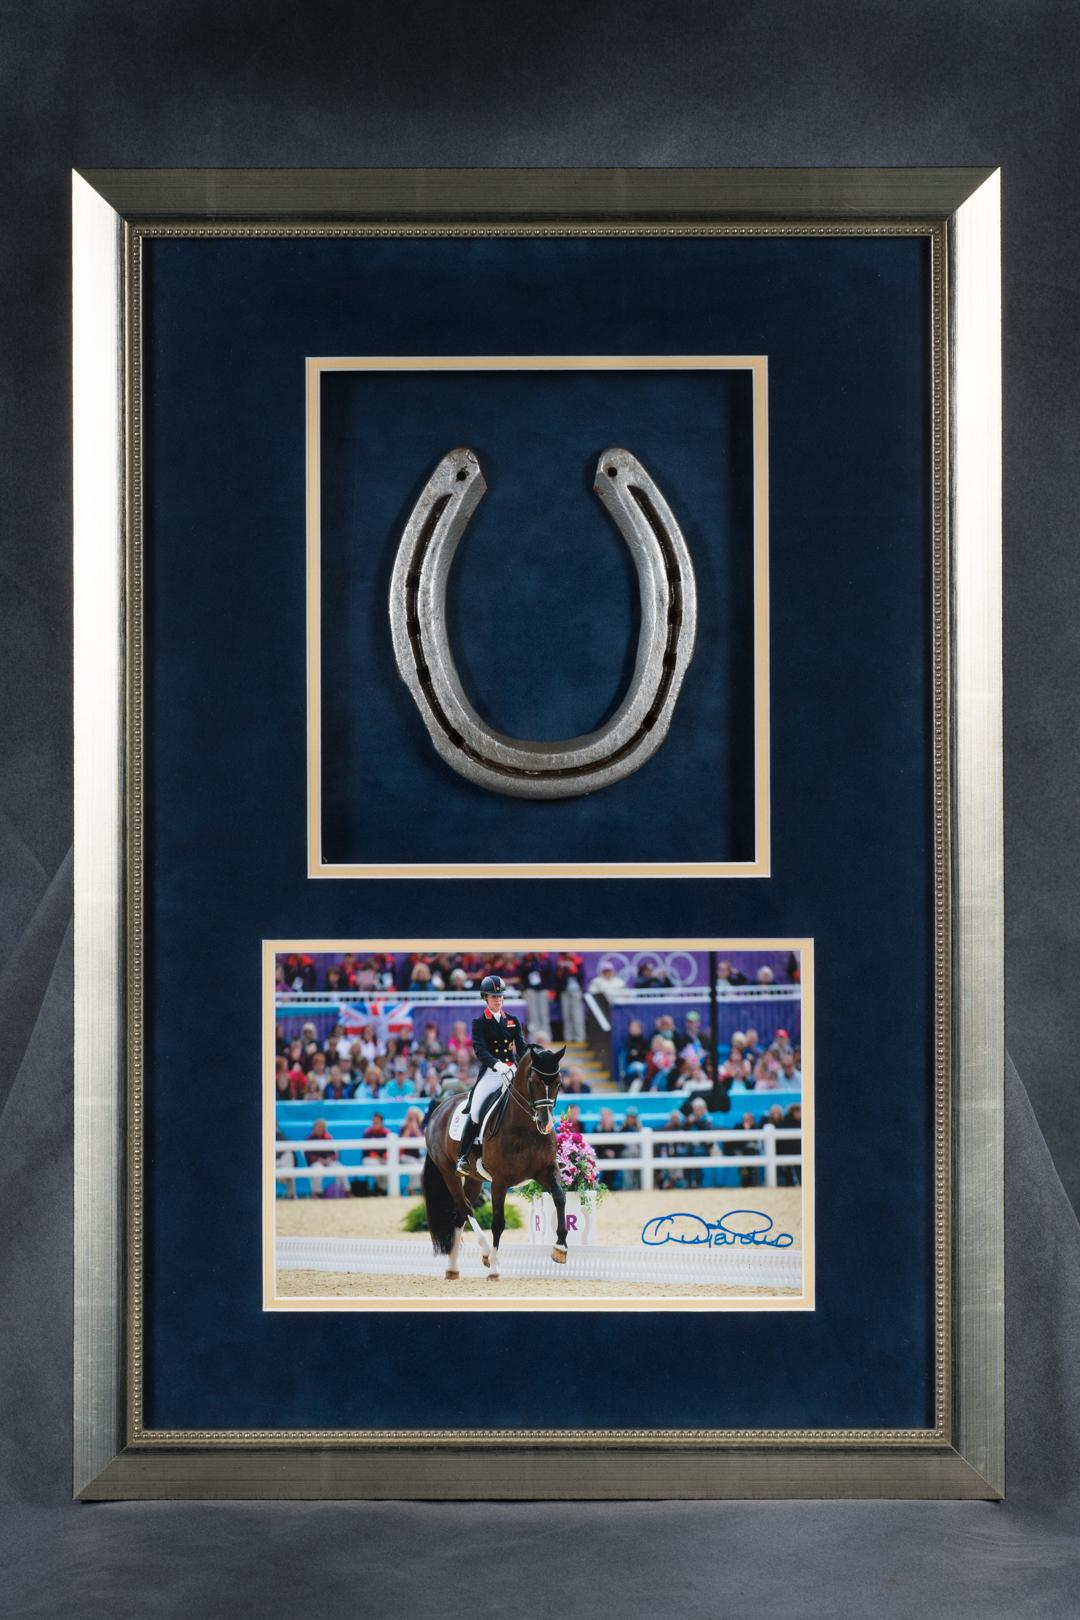 valegro_shoe_-_framed_set_photo_credit_to_christy_cunningham-adams.jpg